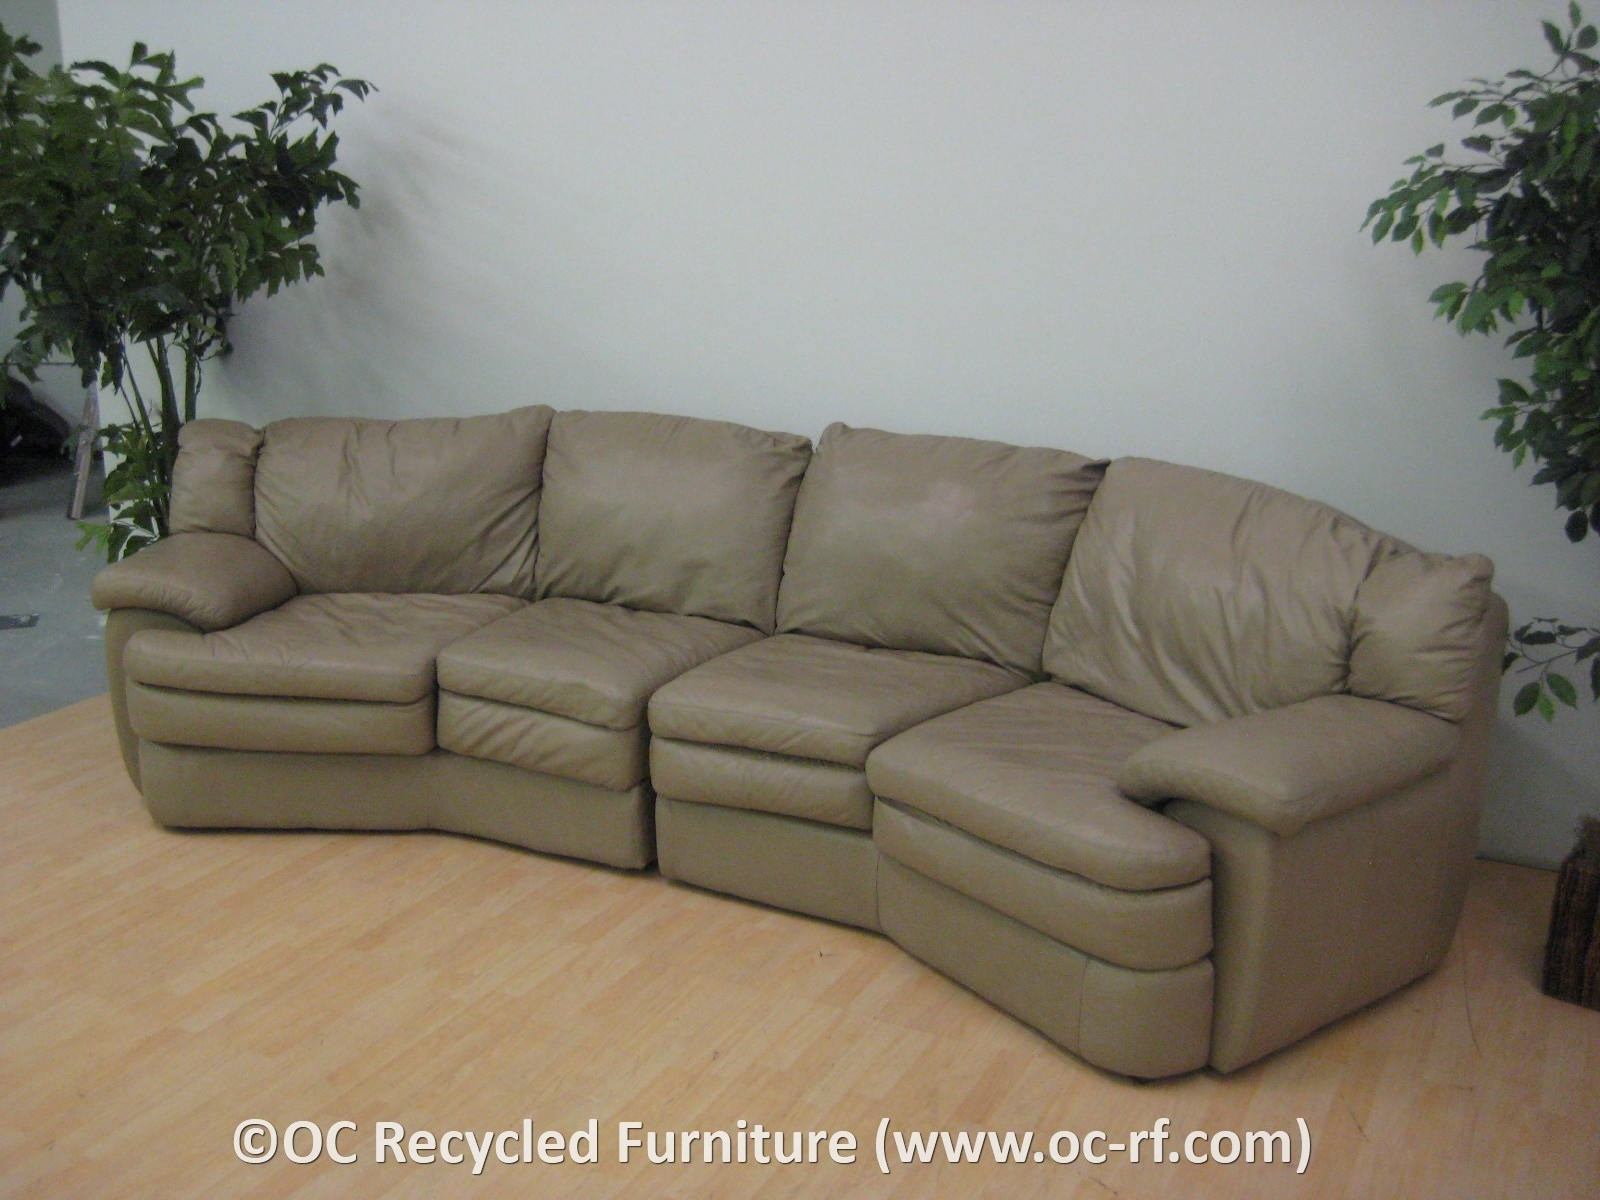 Sofas Center Stirring Circle Sectional Sofa Photoncept Circular With Regard To Circle Sectional Sofa (Image 15 of 15)